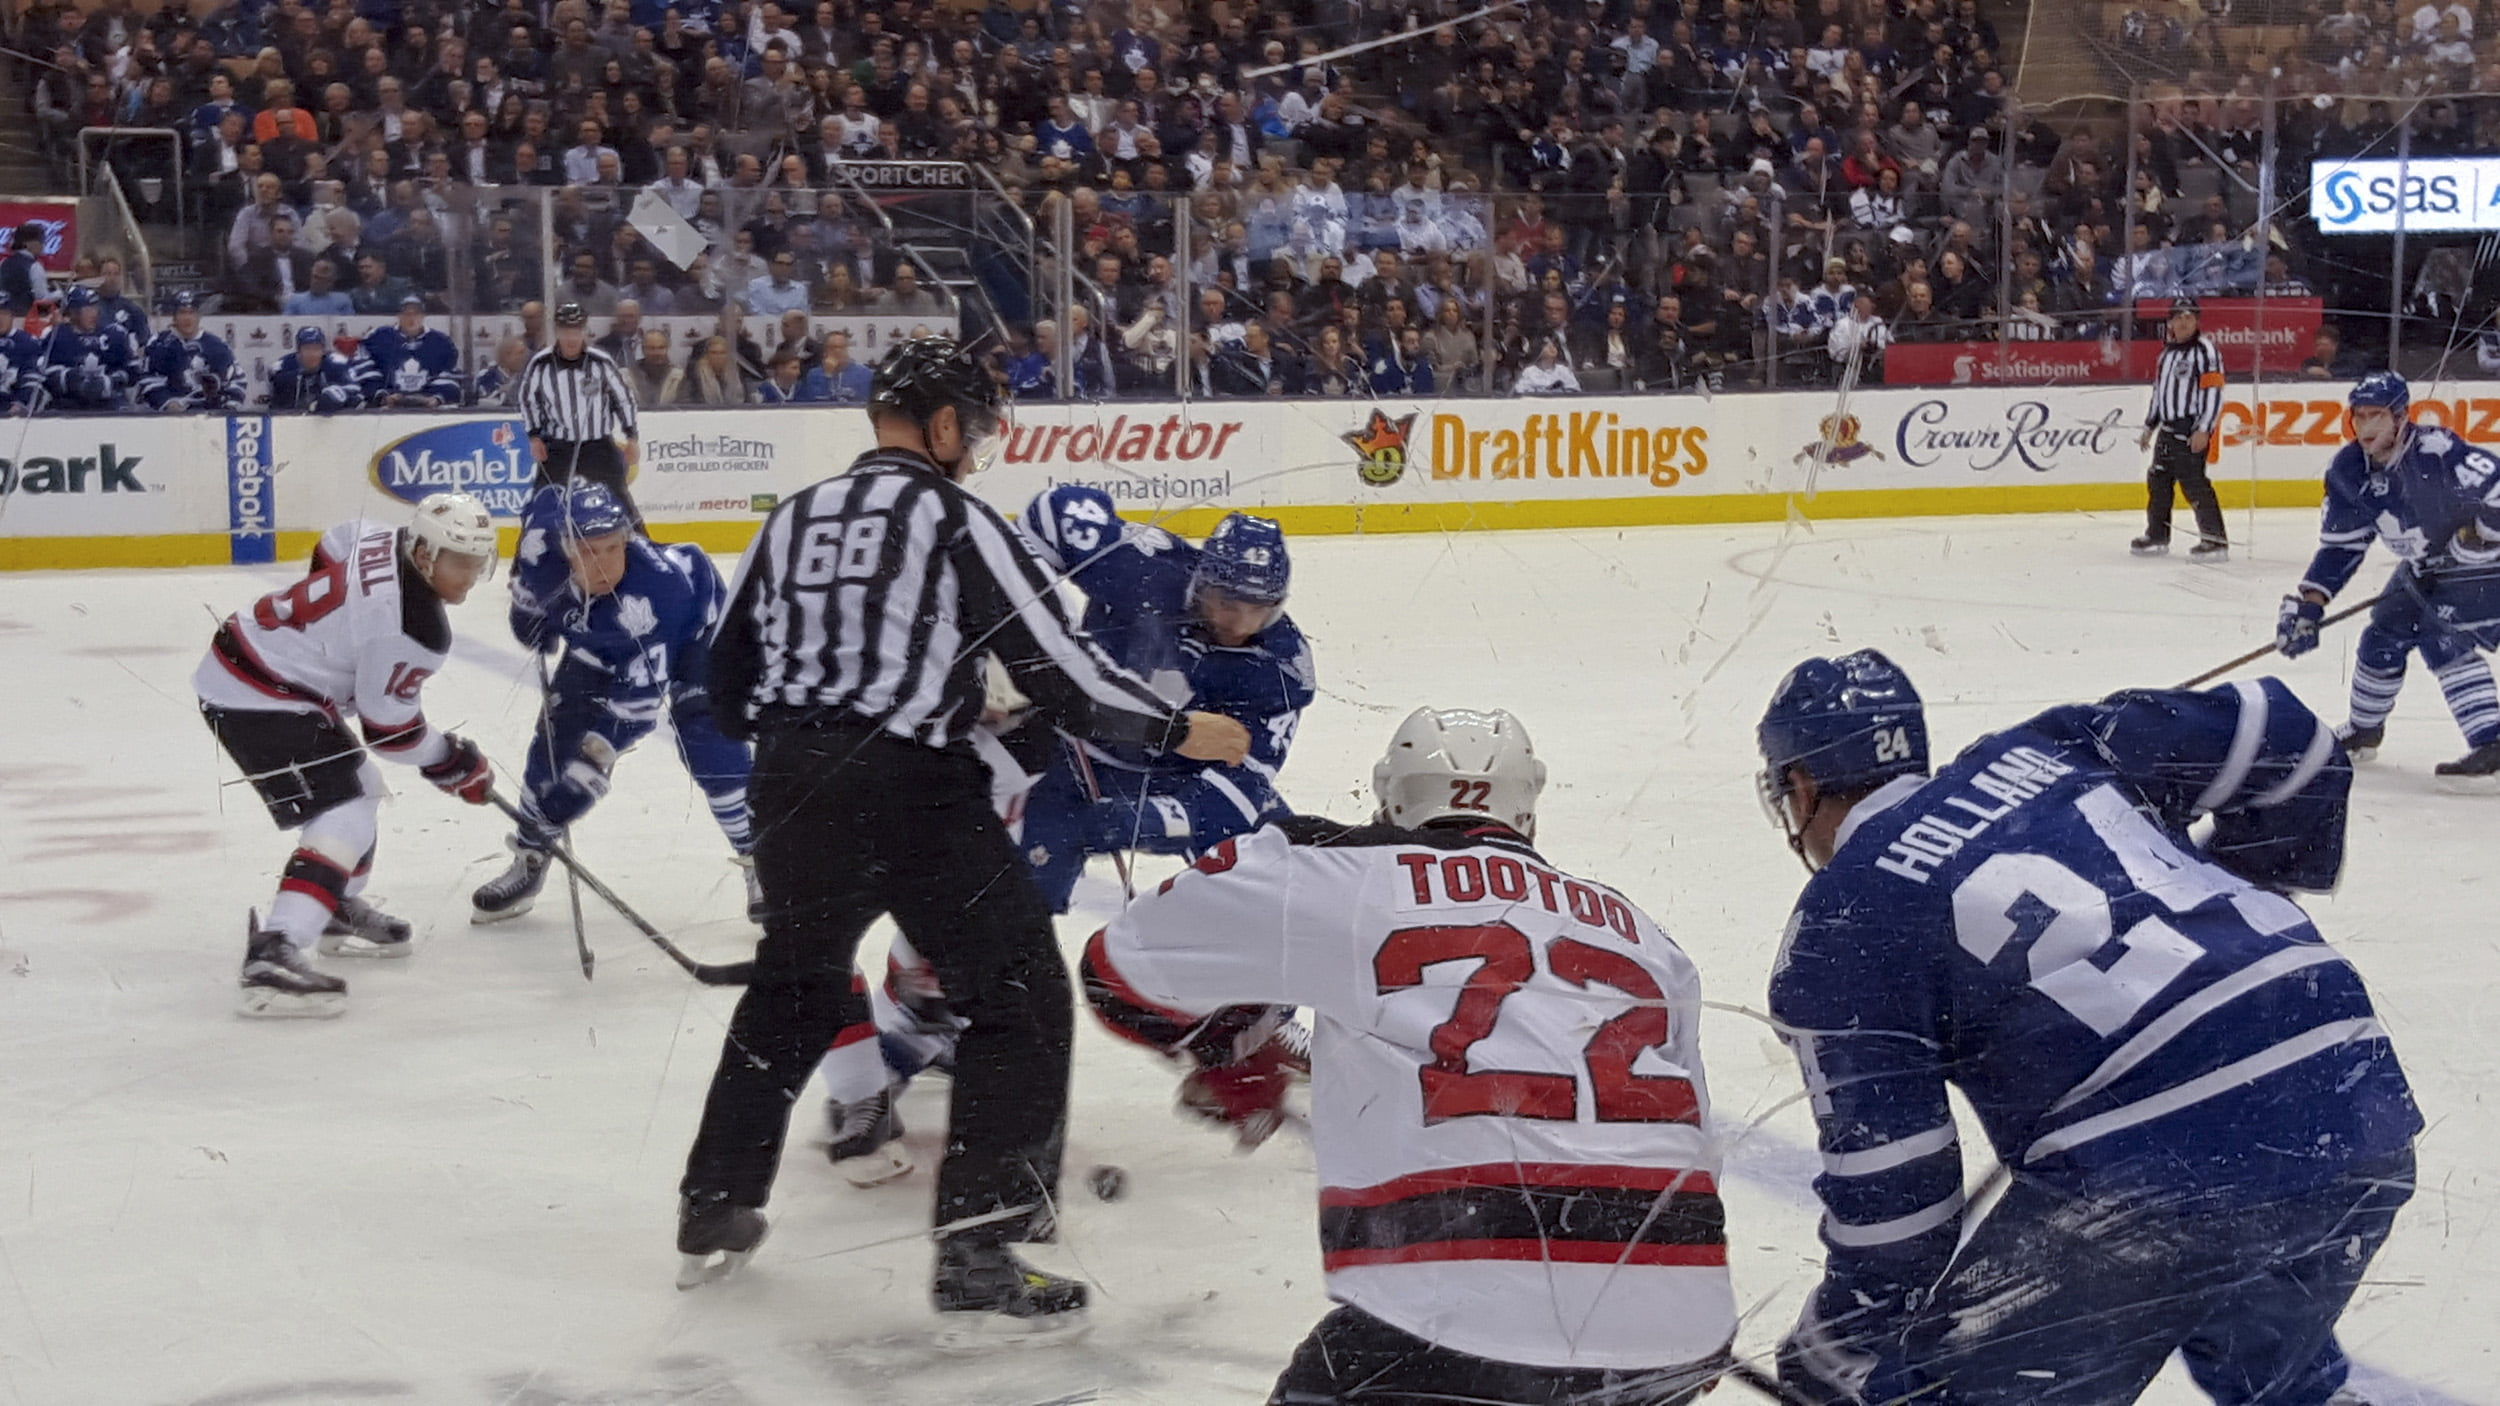 Toronto Maple Leafs versus the New Jersey Devils